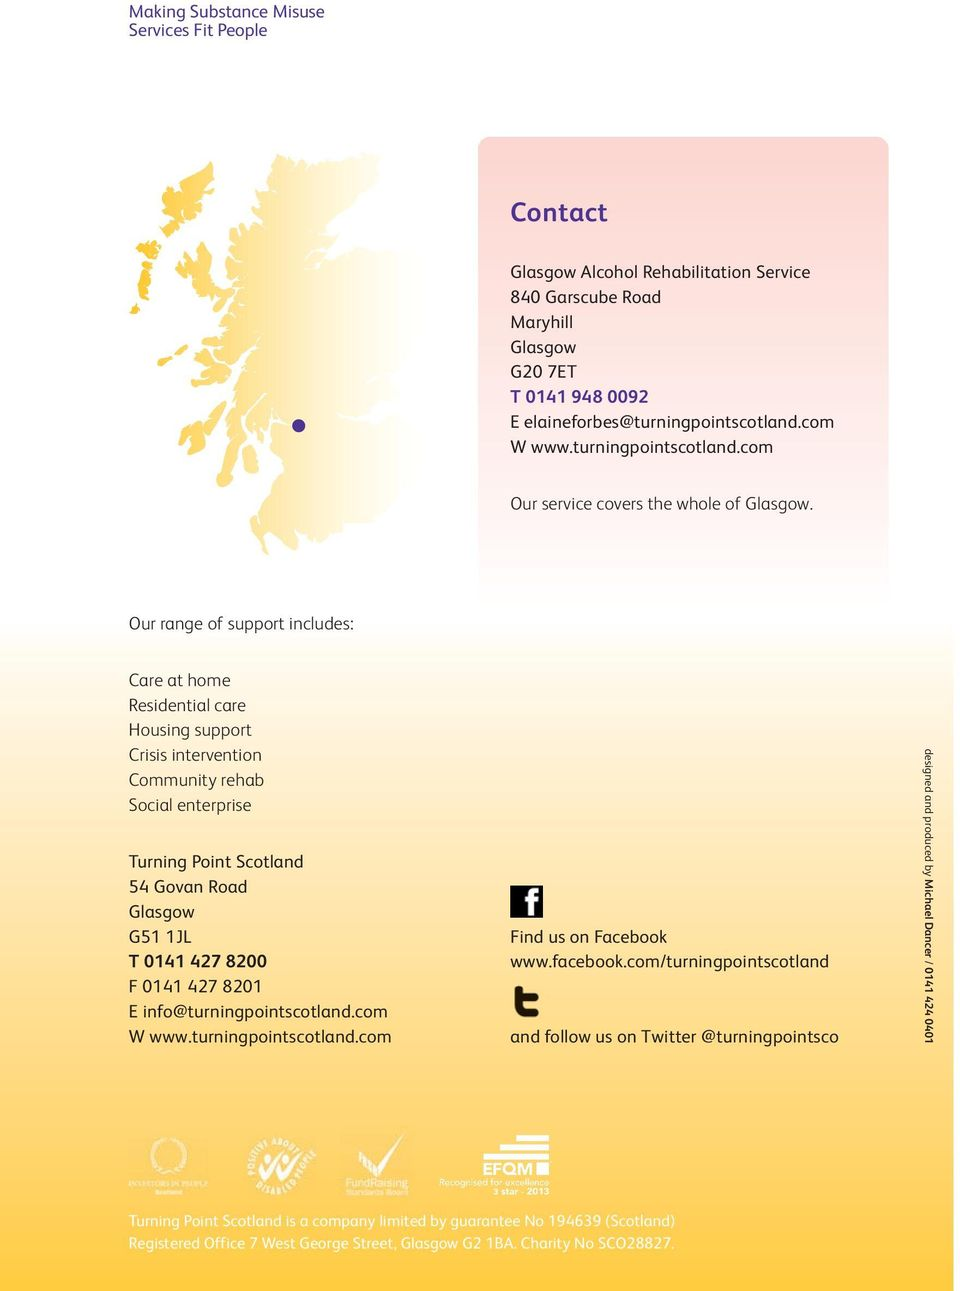 0141 427 8201 E info@turningpointscotland.com W www.turningpointscotland.com Find us on Facebook www.facebook.